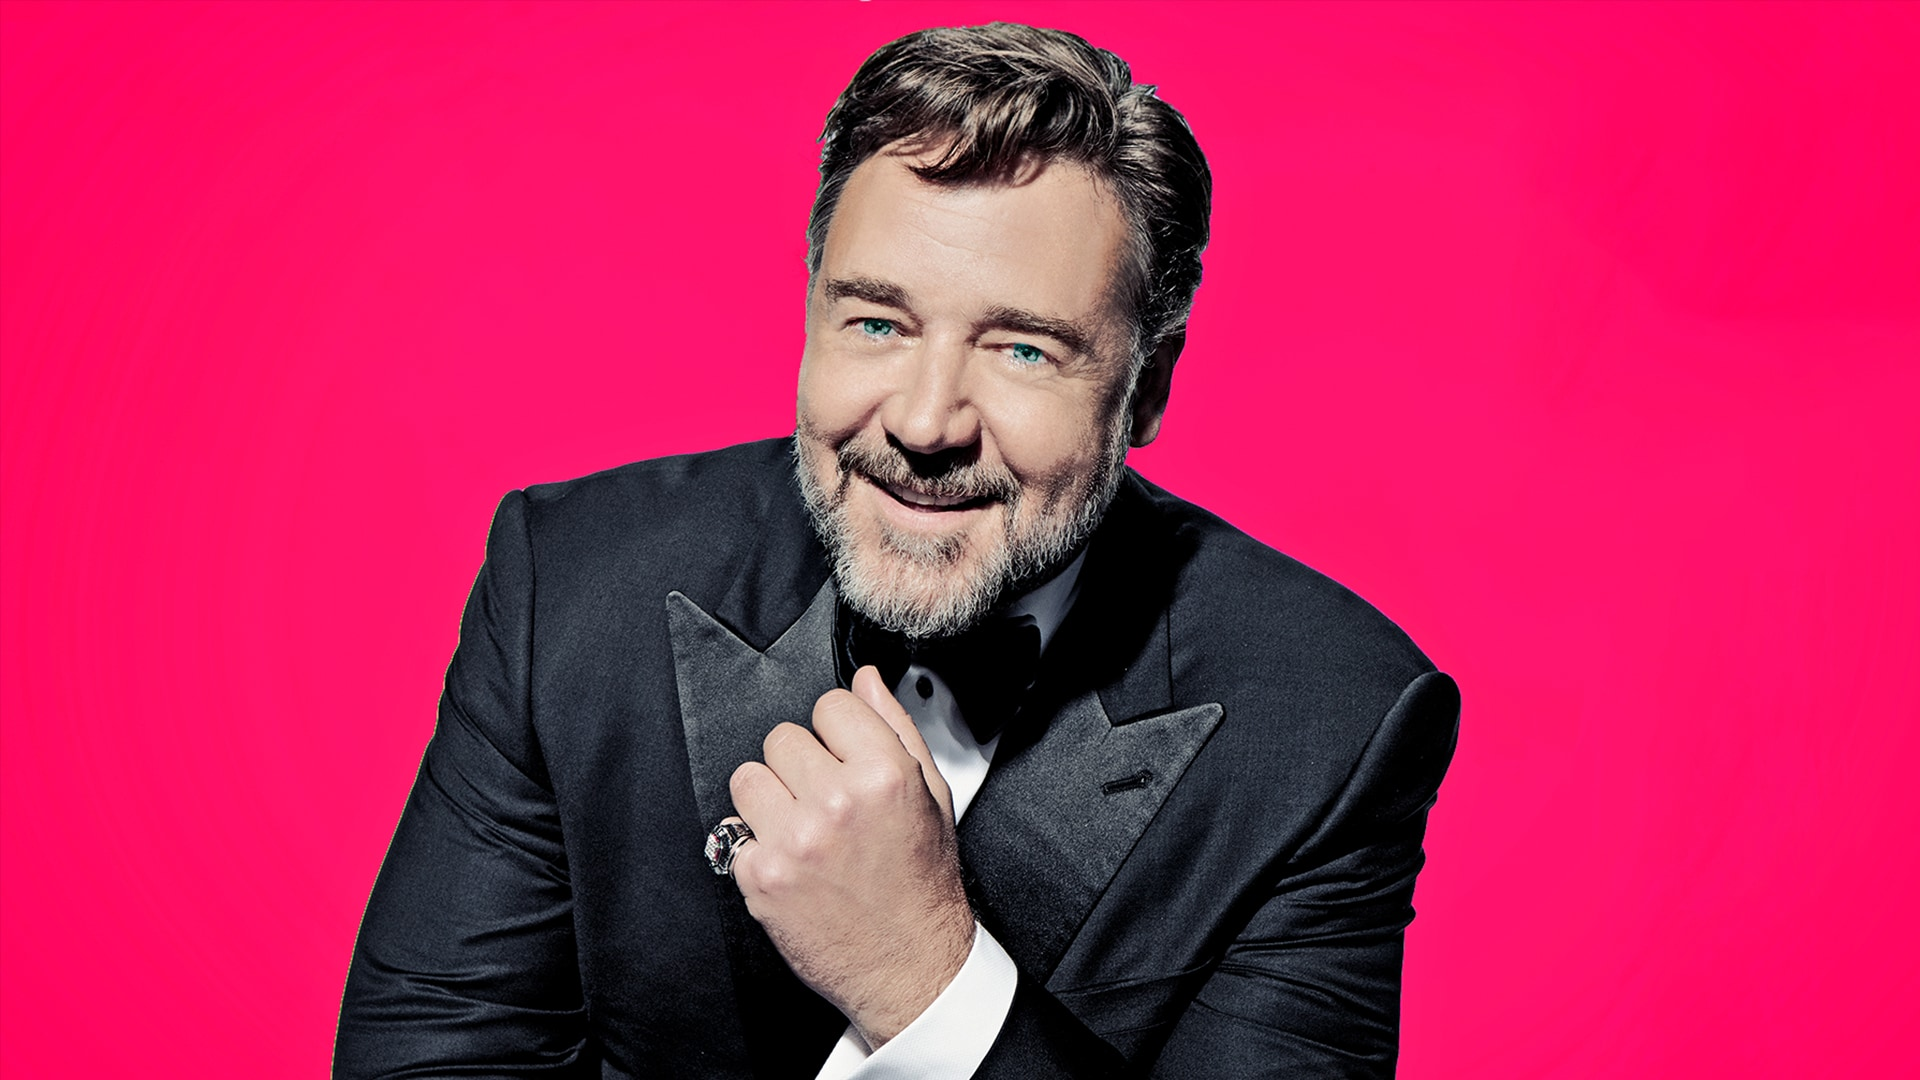 Russell Crowe: April 9, 2016